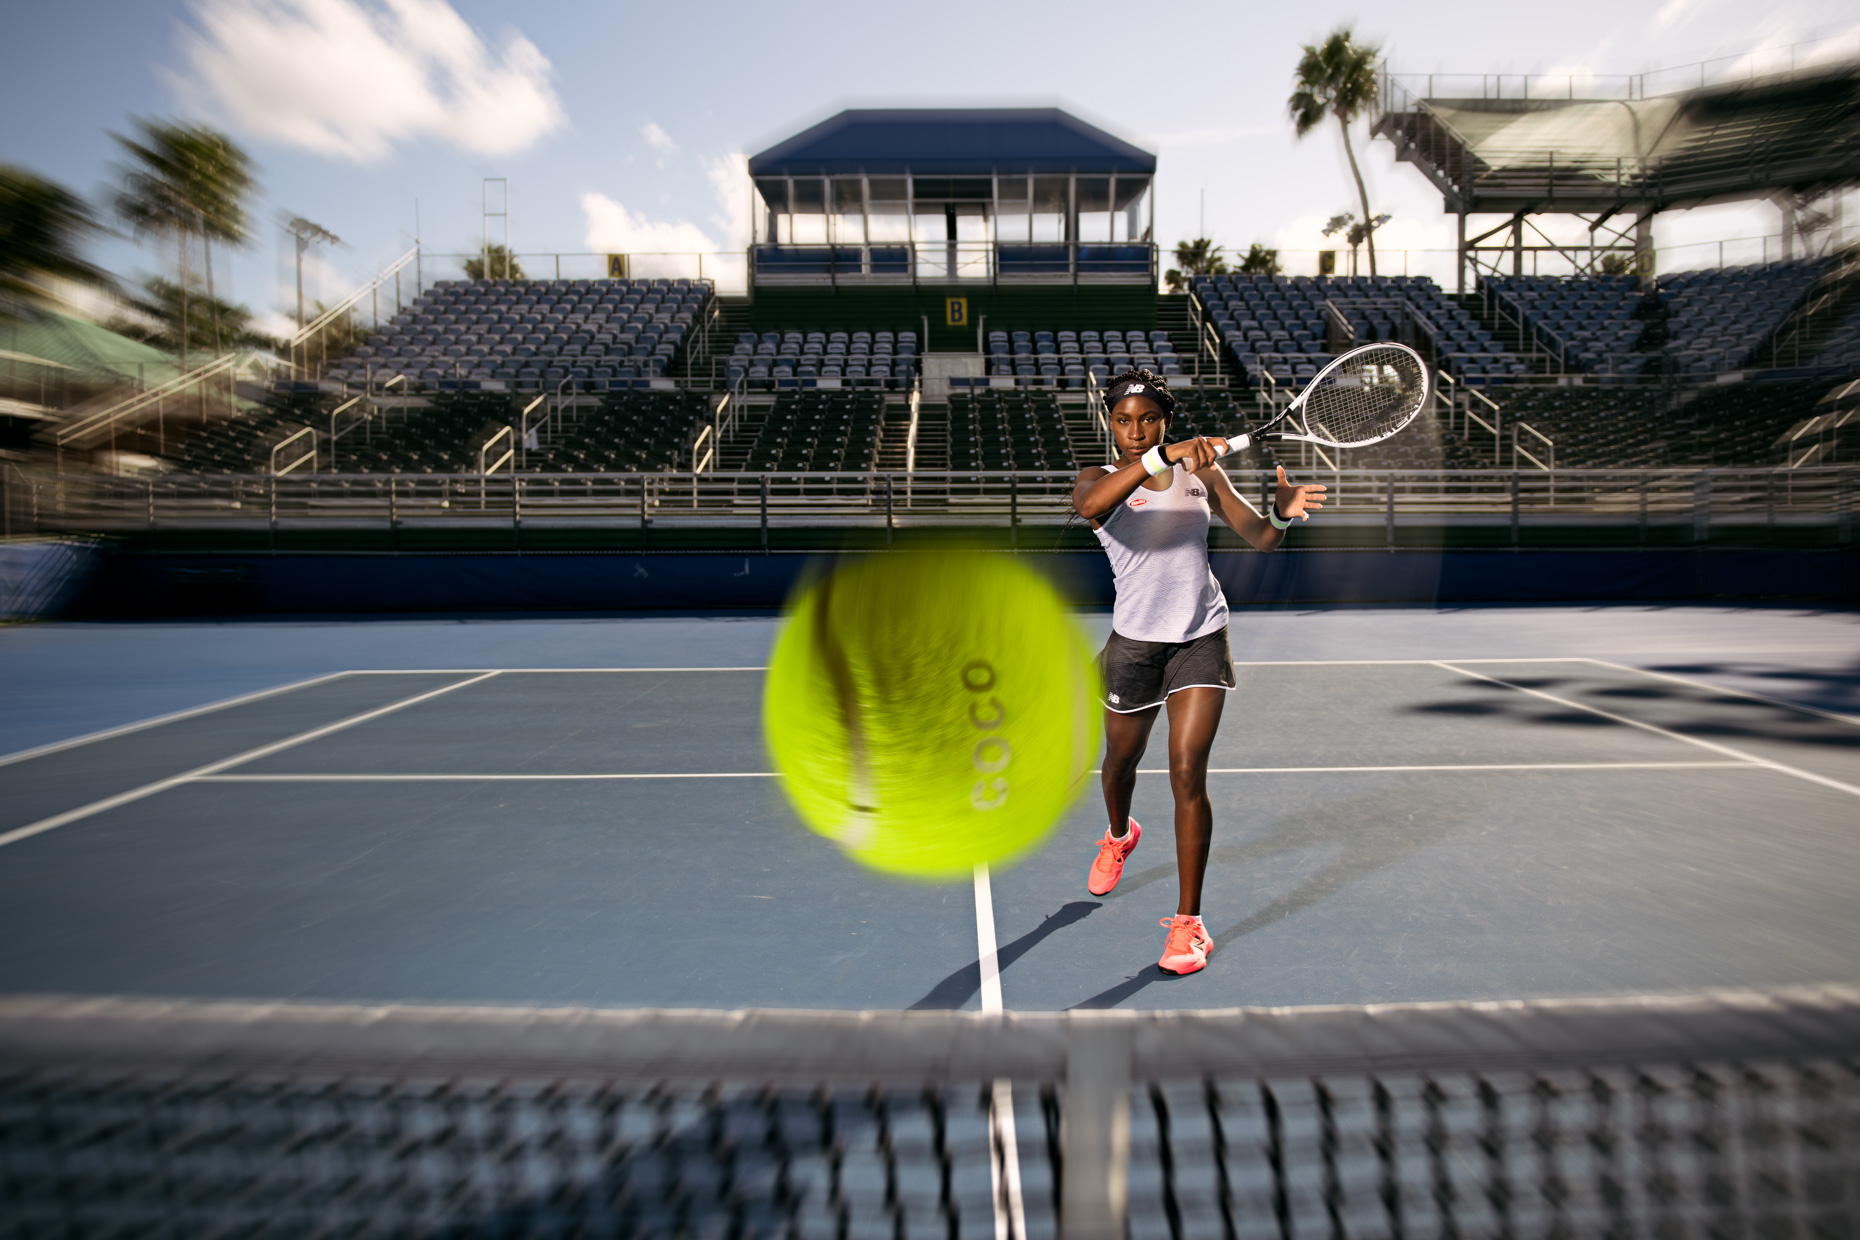 Coco Gauff - Tennis photoshoot - Delray Beach, FL - US Open - New Balance 3